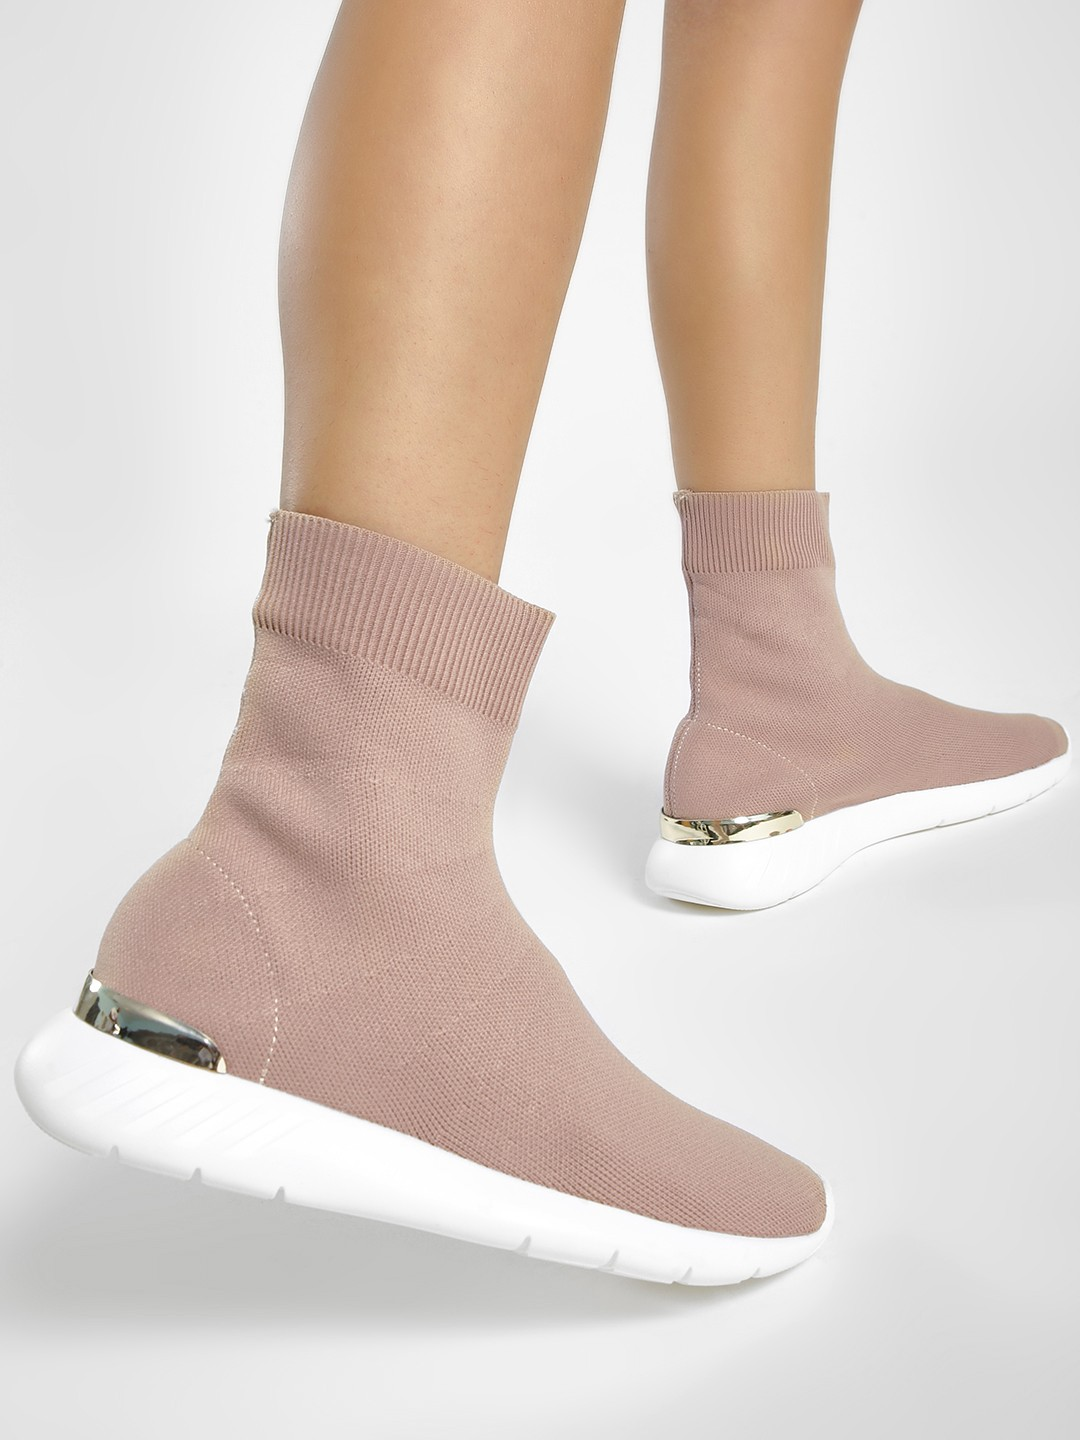 Sole Story Beige Back Metallic Panel Knitted Sockliner Shoes 1